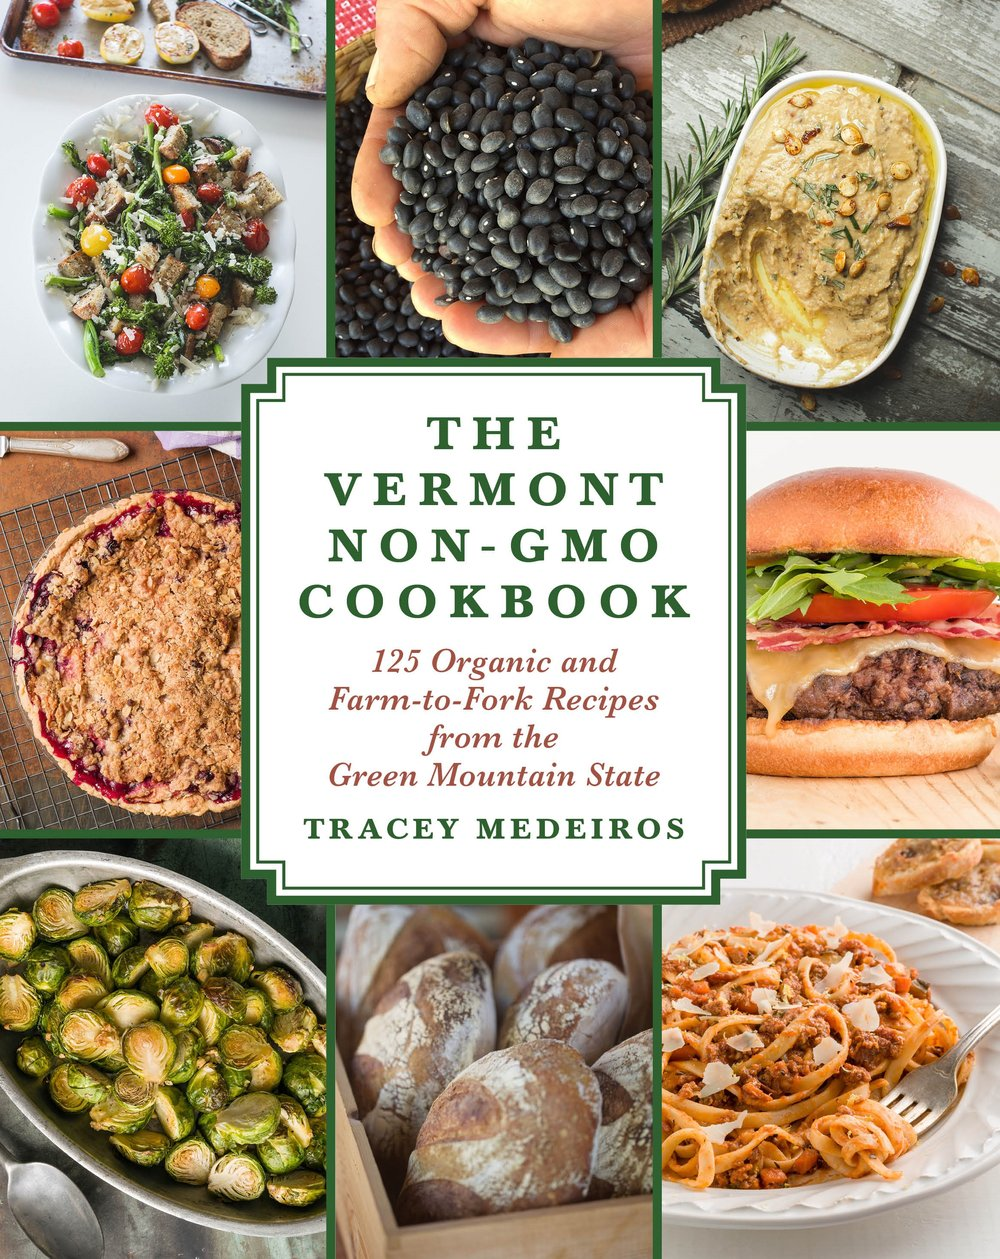 Vermont Non-GMO Cookbook_Front Cover jpeg.jpg